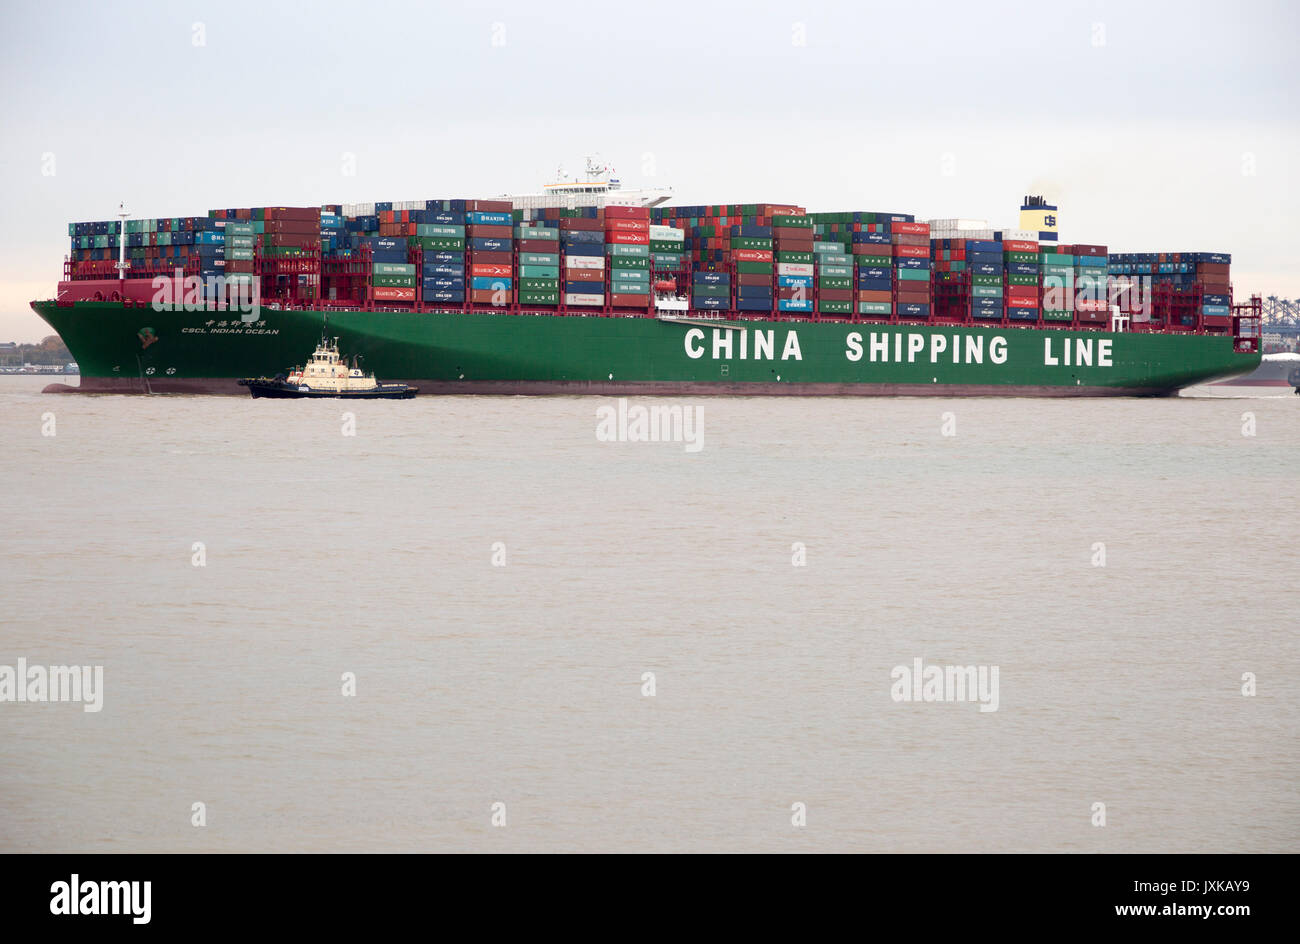 Large container ship, the Indian Ocean, of China Shipping